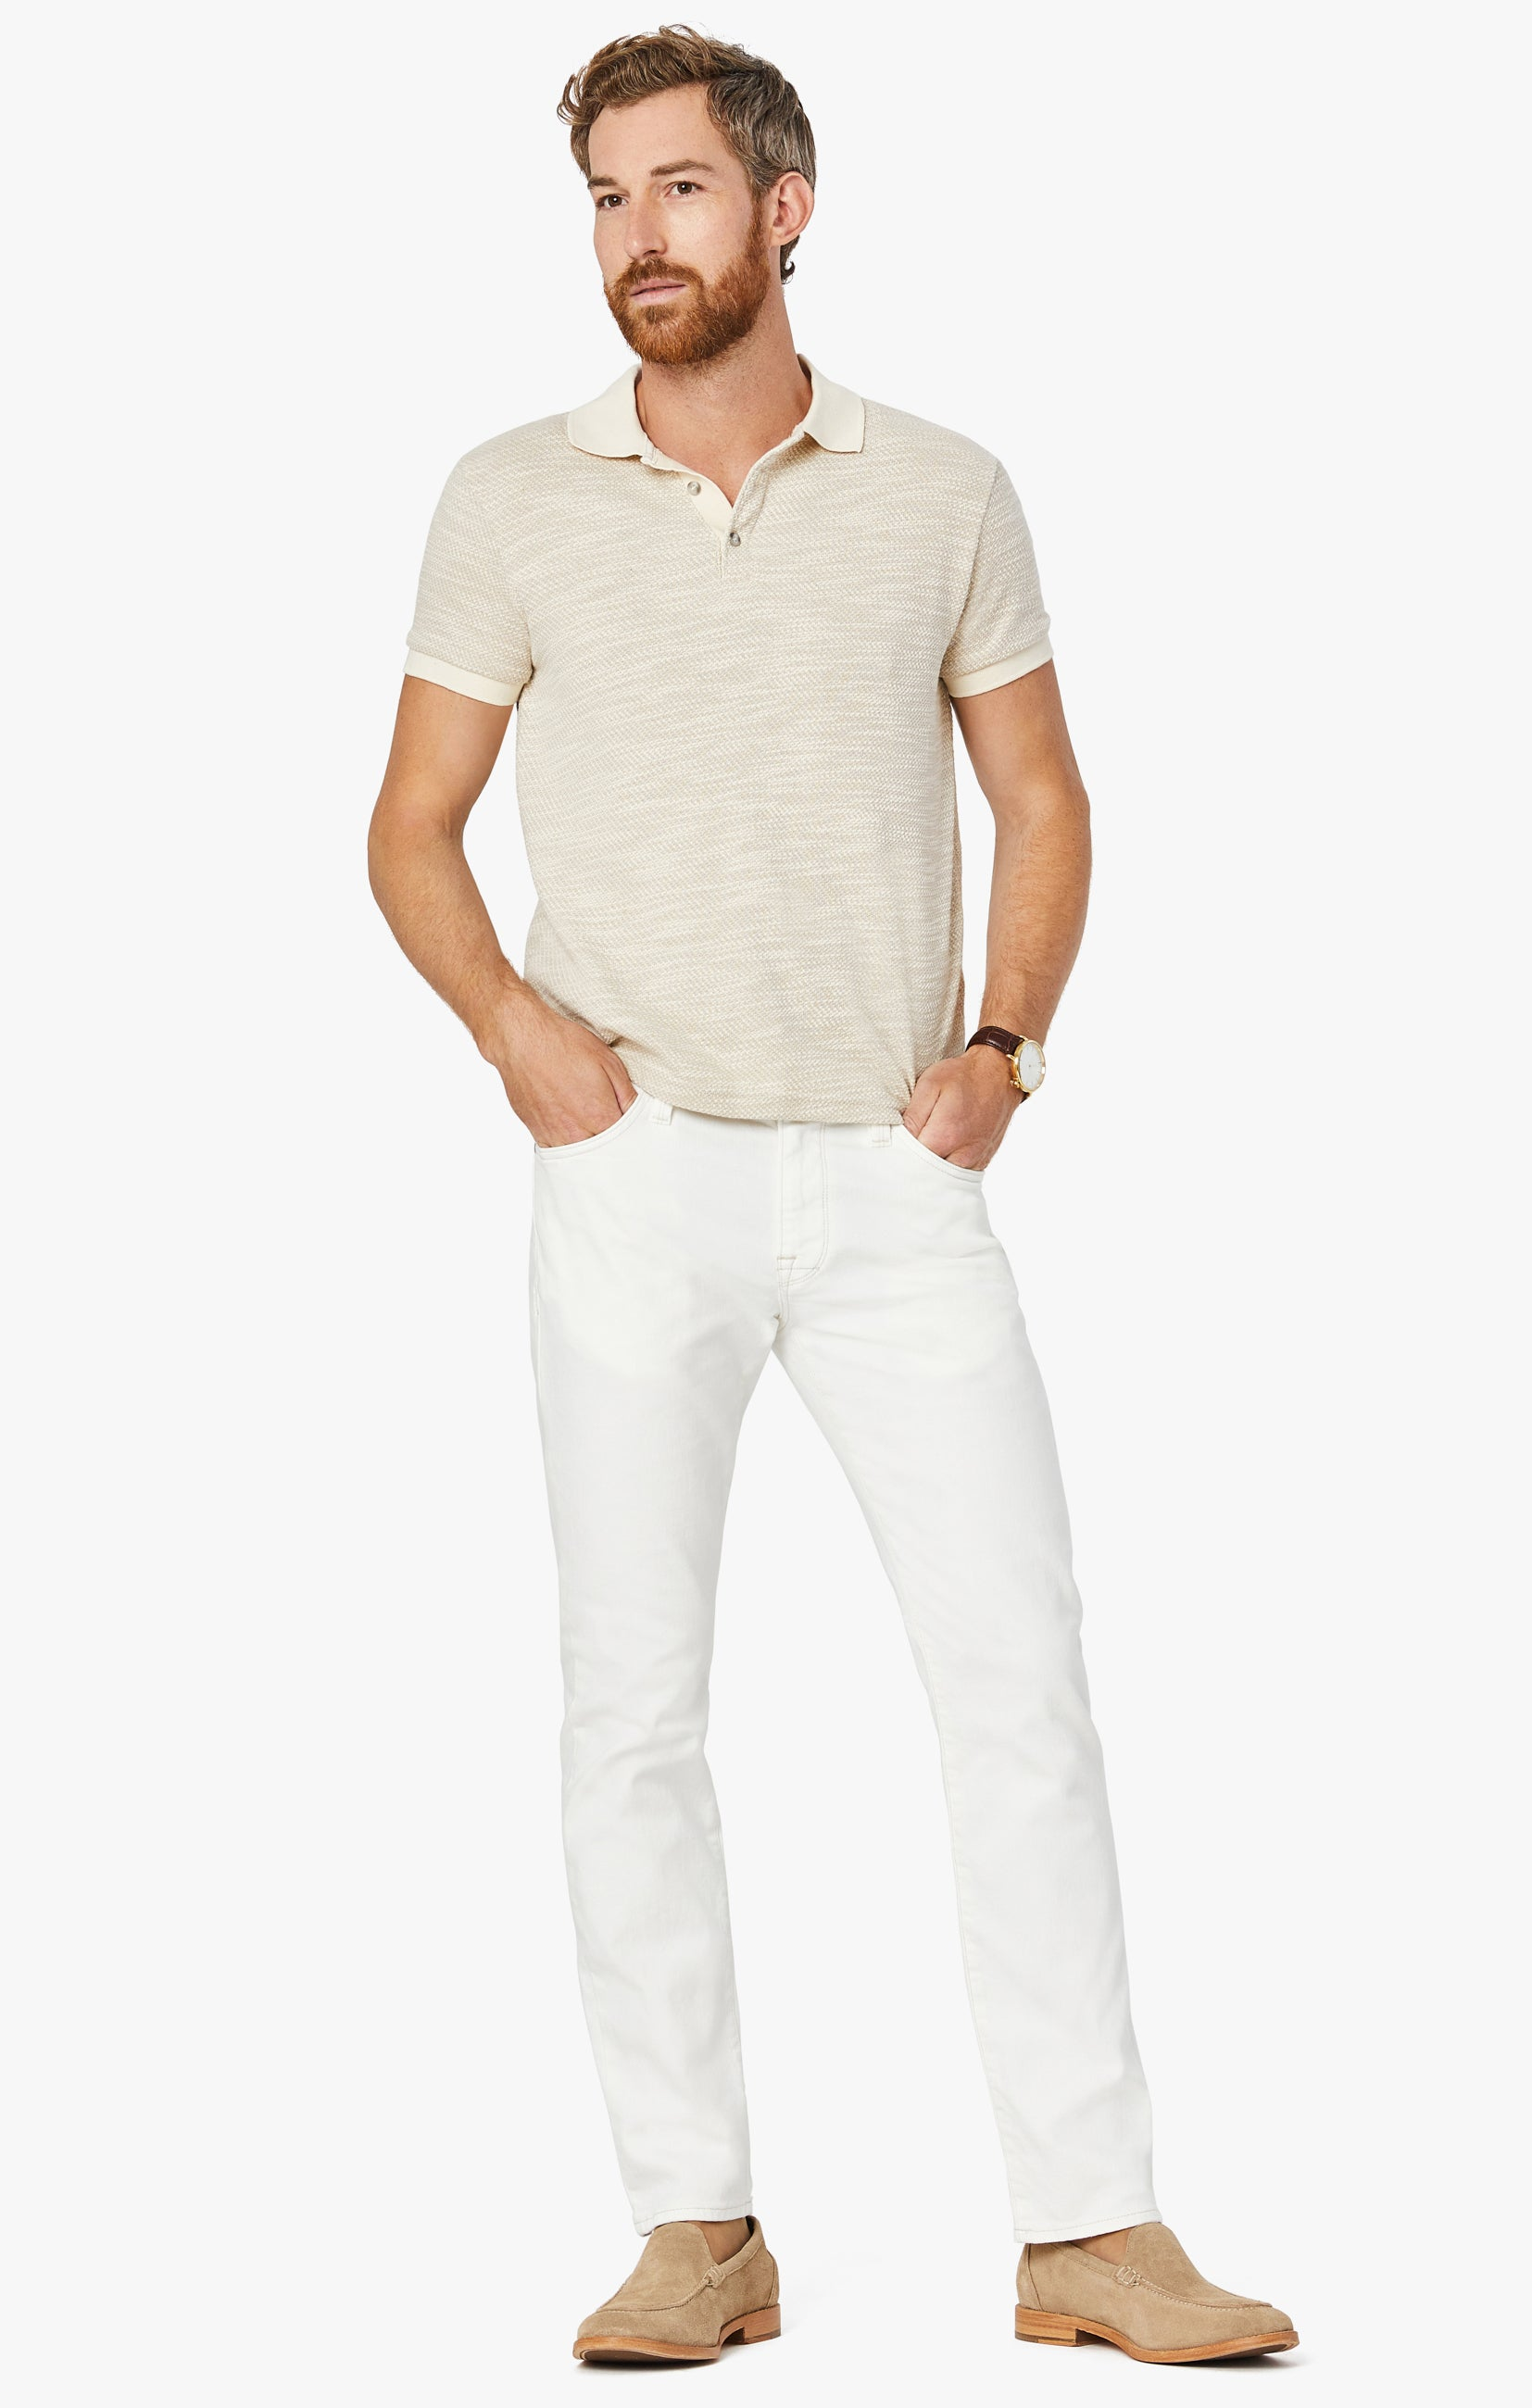 Courage Straight Leg Jeans in White Denim Image 2